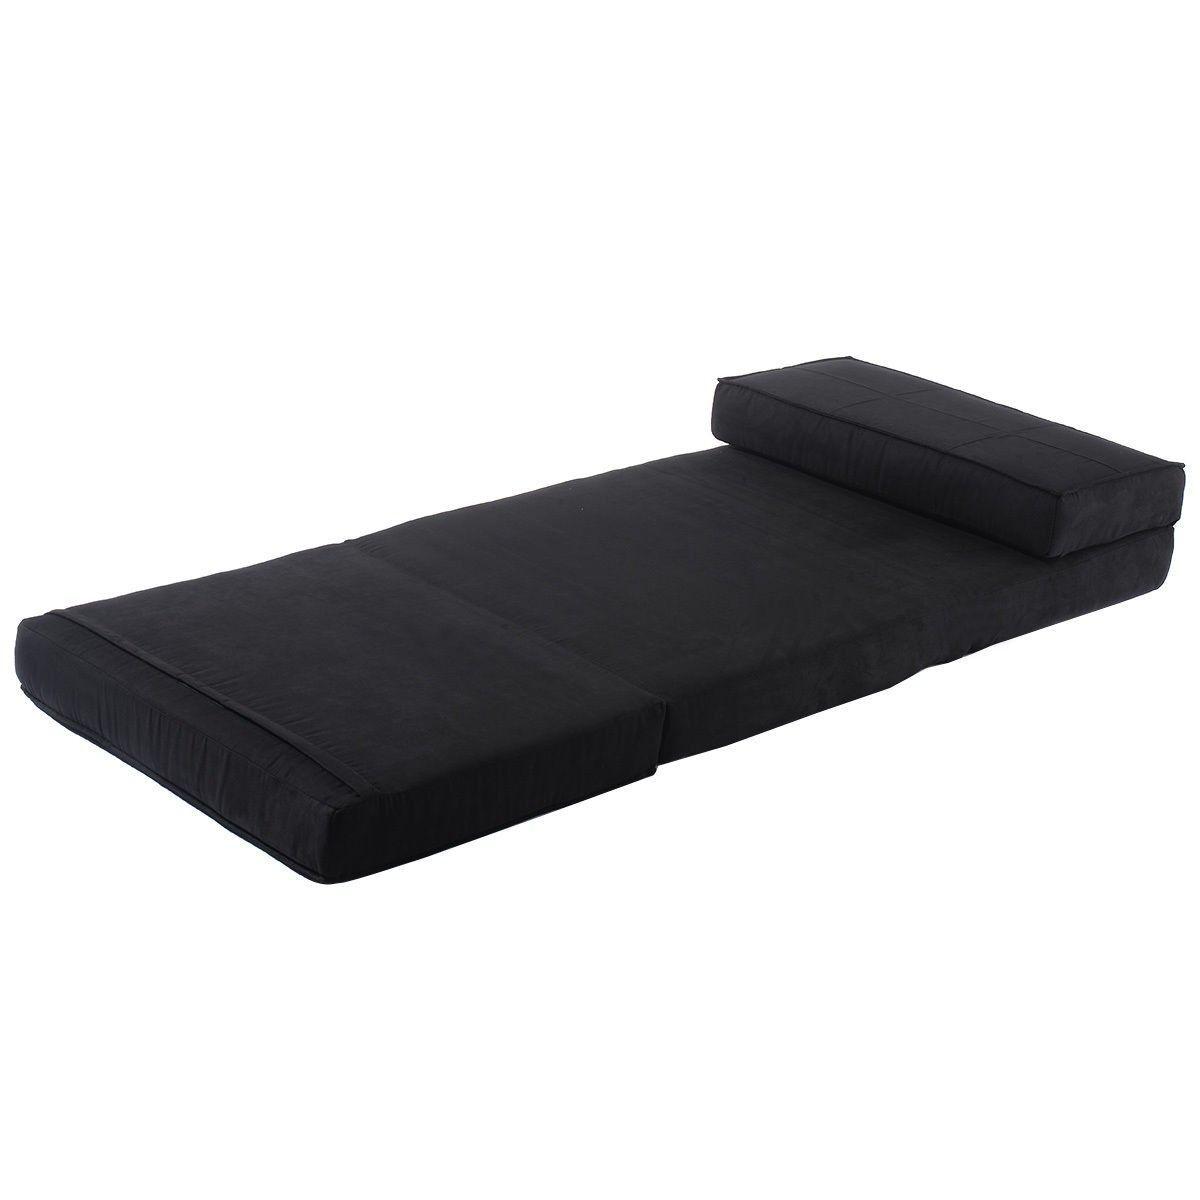 Swell Convertible Lounger Folding Sofa Sleeper Bed Chairs Game Alphanode Cool Chair Designs And Ideas Alphanodeonline